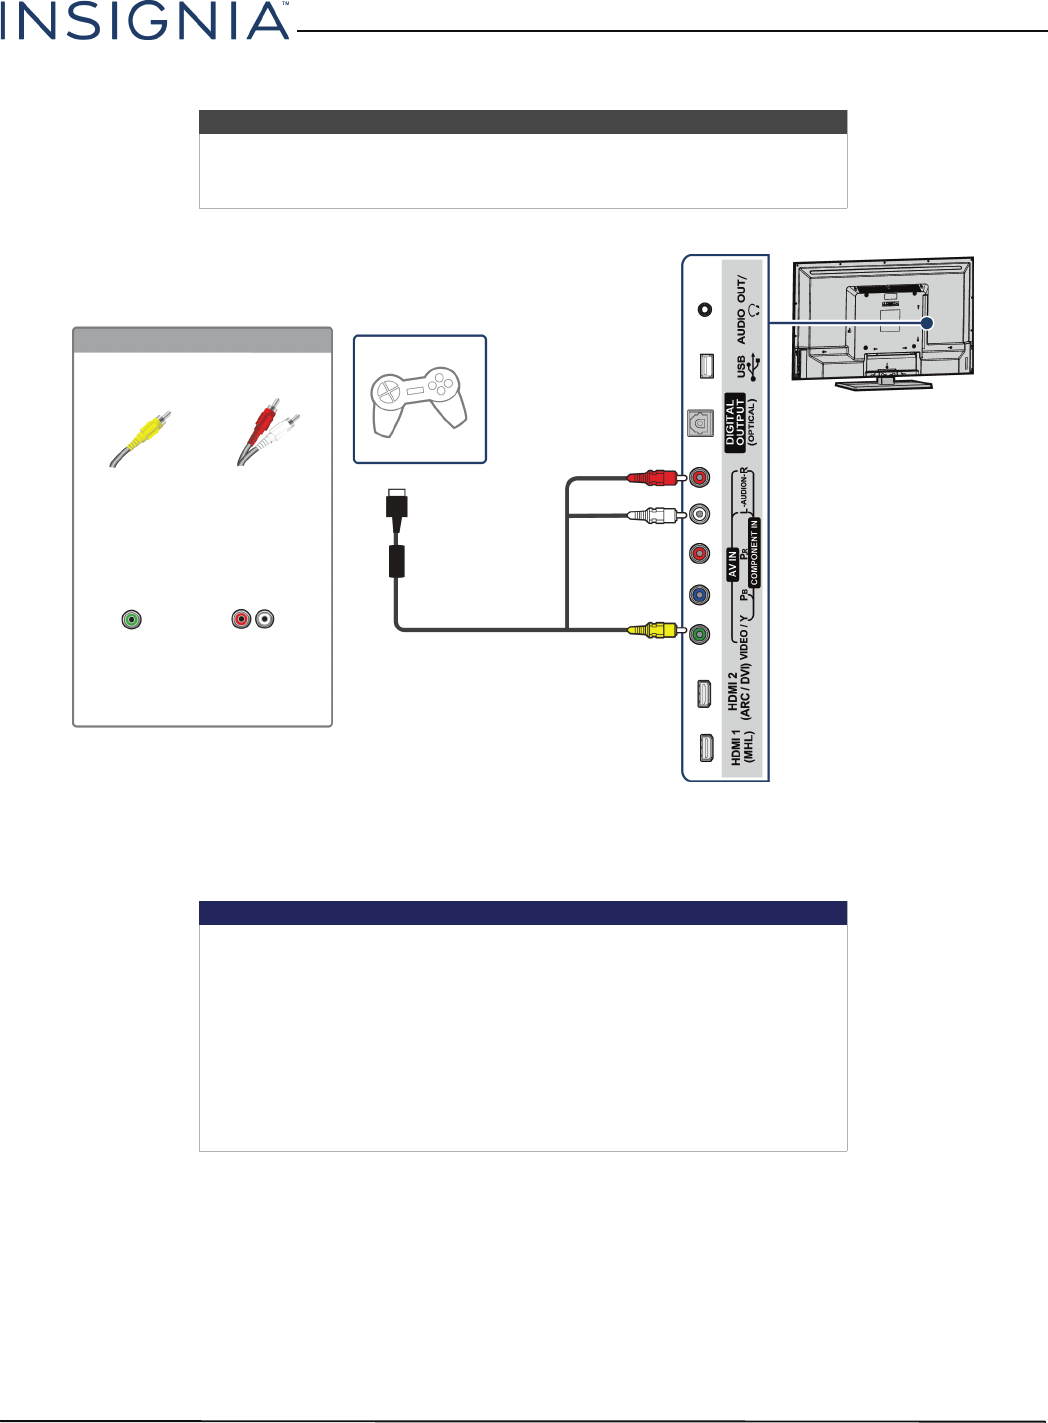 Page 31 of Insignia Flat Panel Television NS-32D312NA15